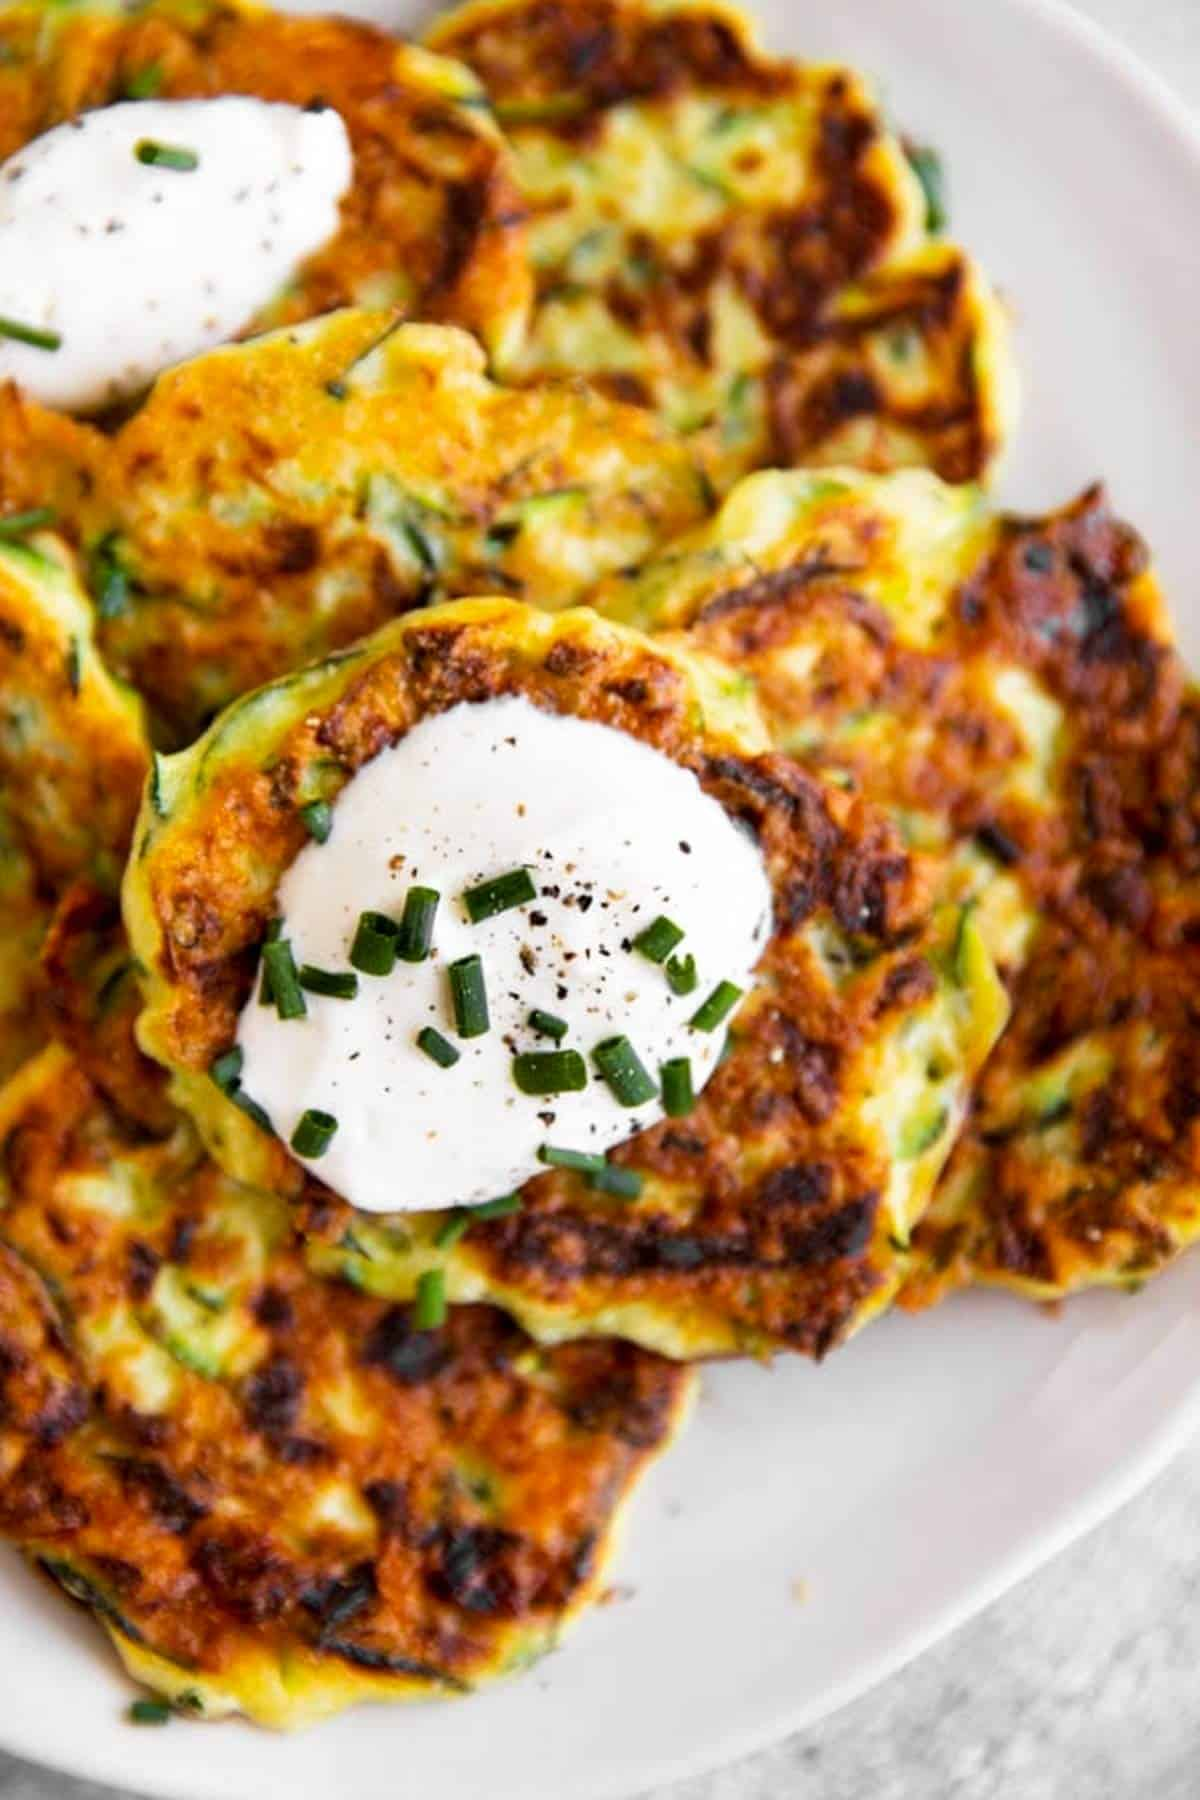 close up photo of zucchini fritters on plate with sour cream